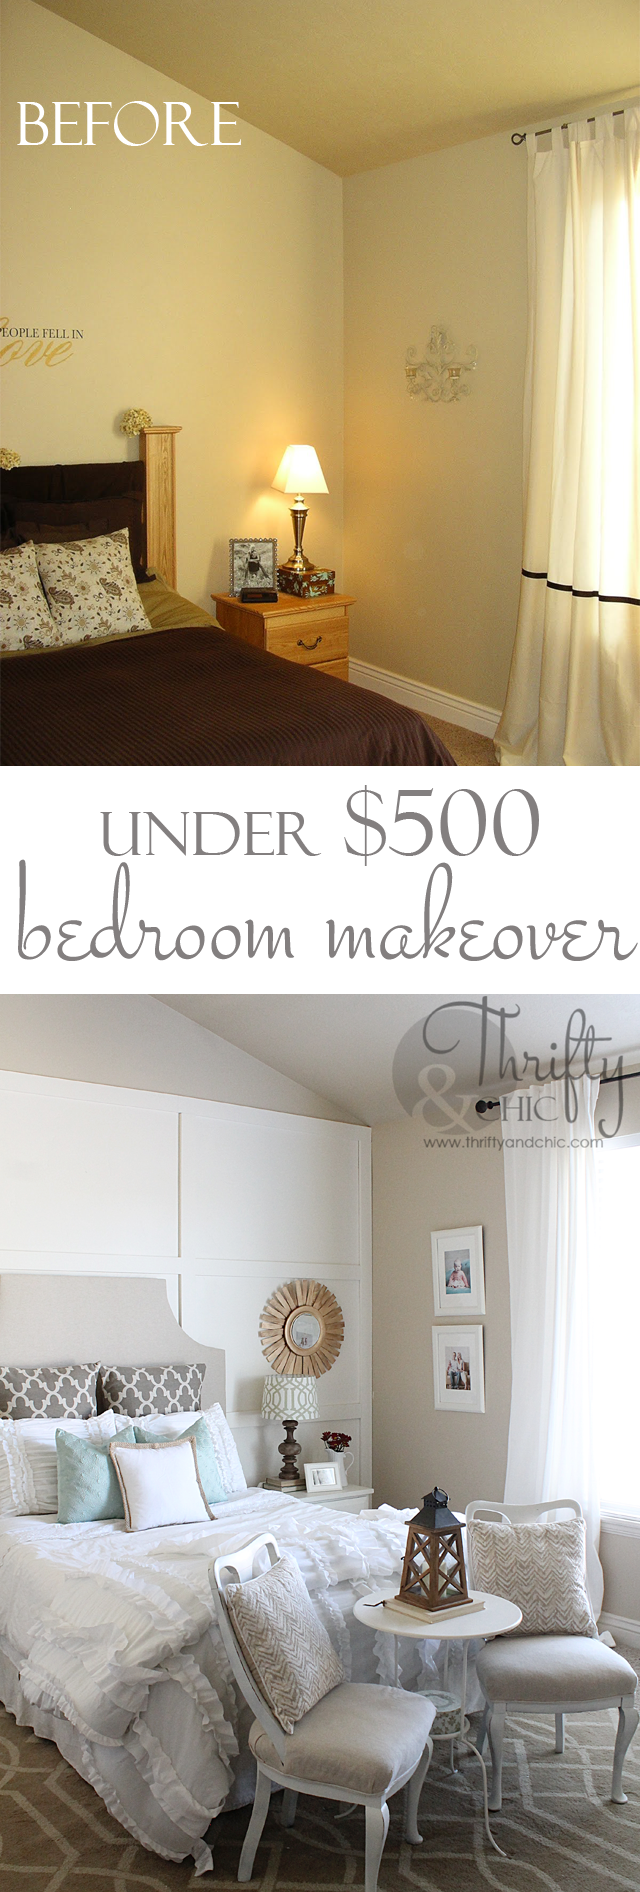 Square Board And Batten Wall Treatment And Master Bedroom Makeover